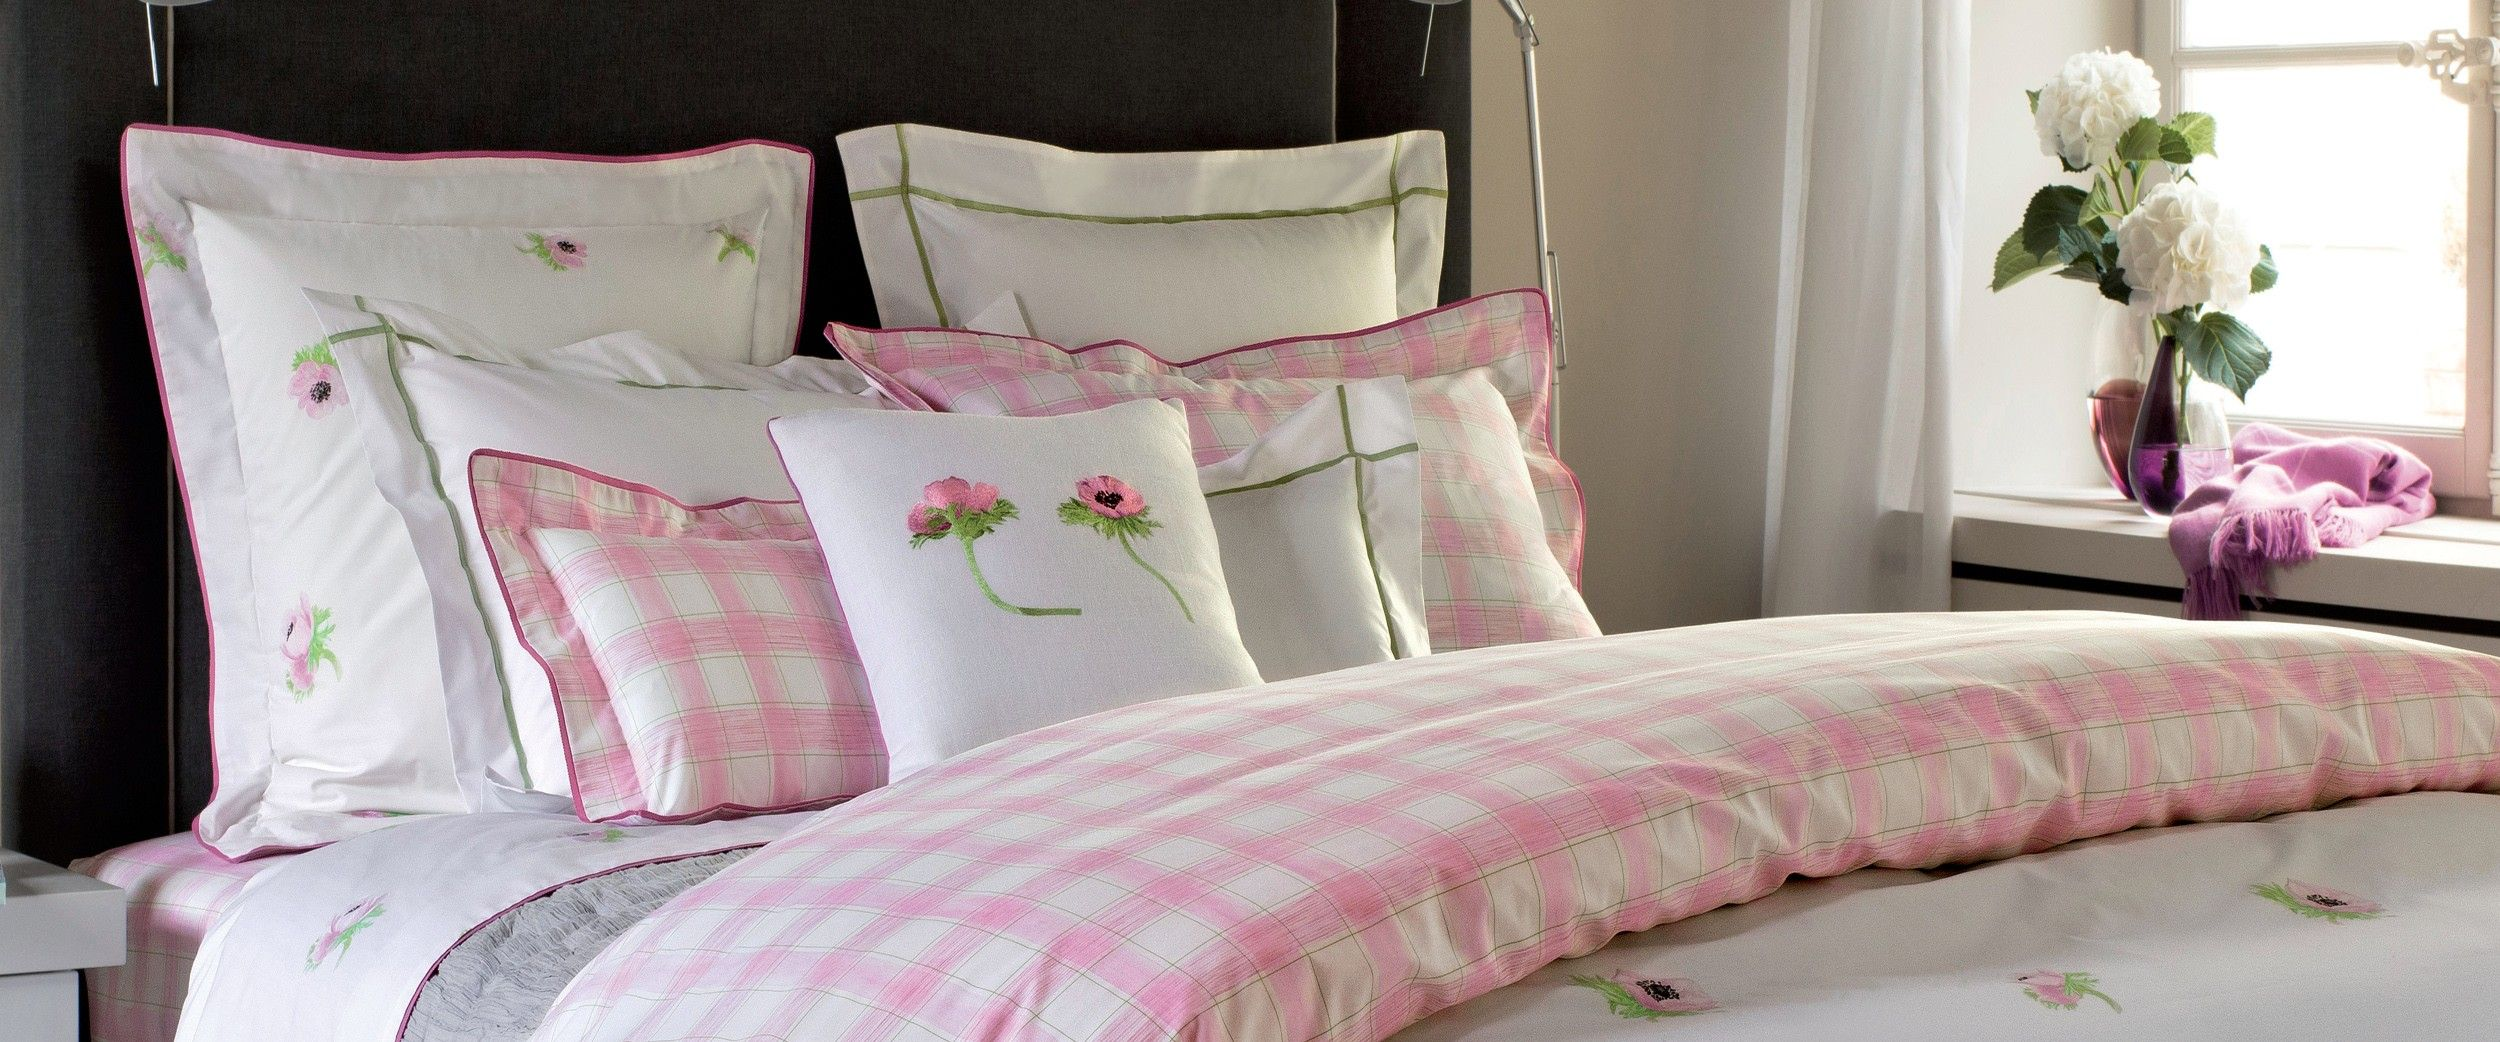 Yves Delorme- beautiful French bedding